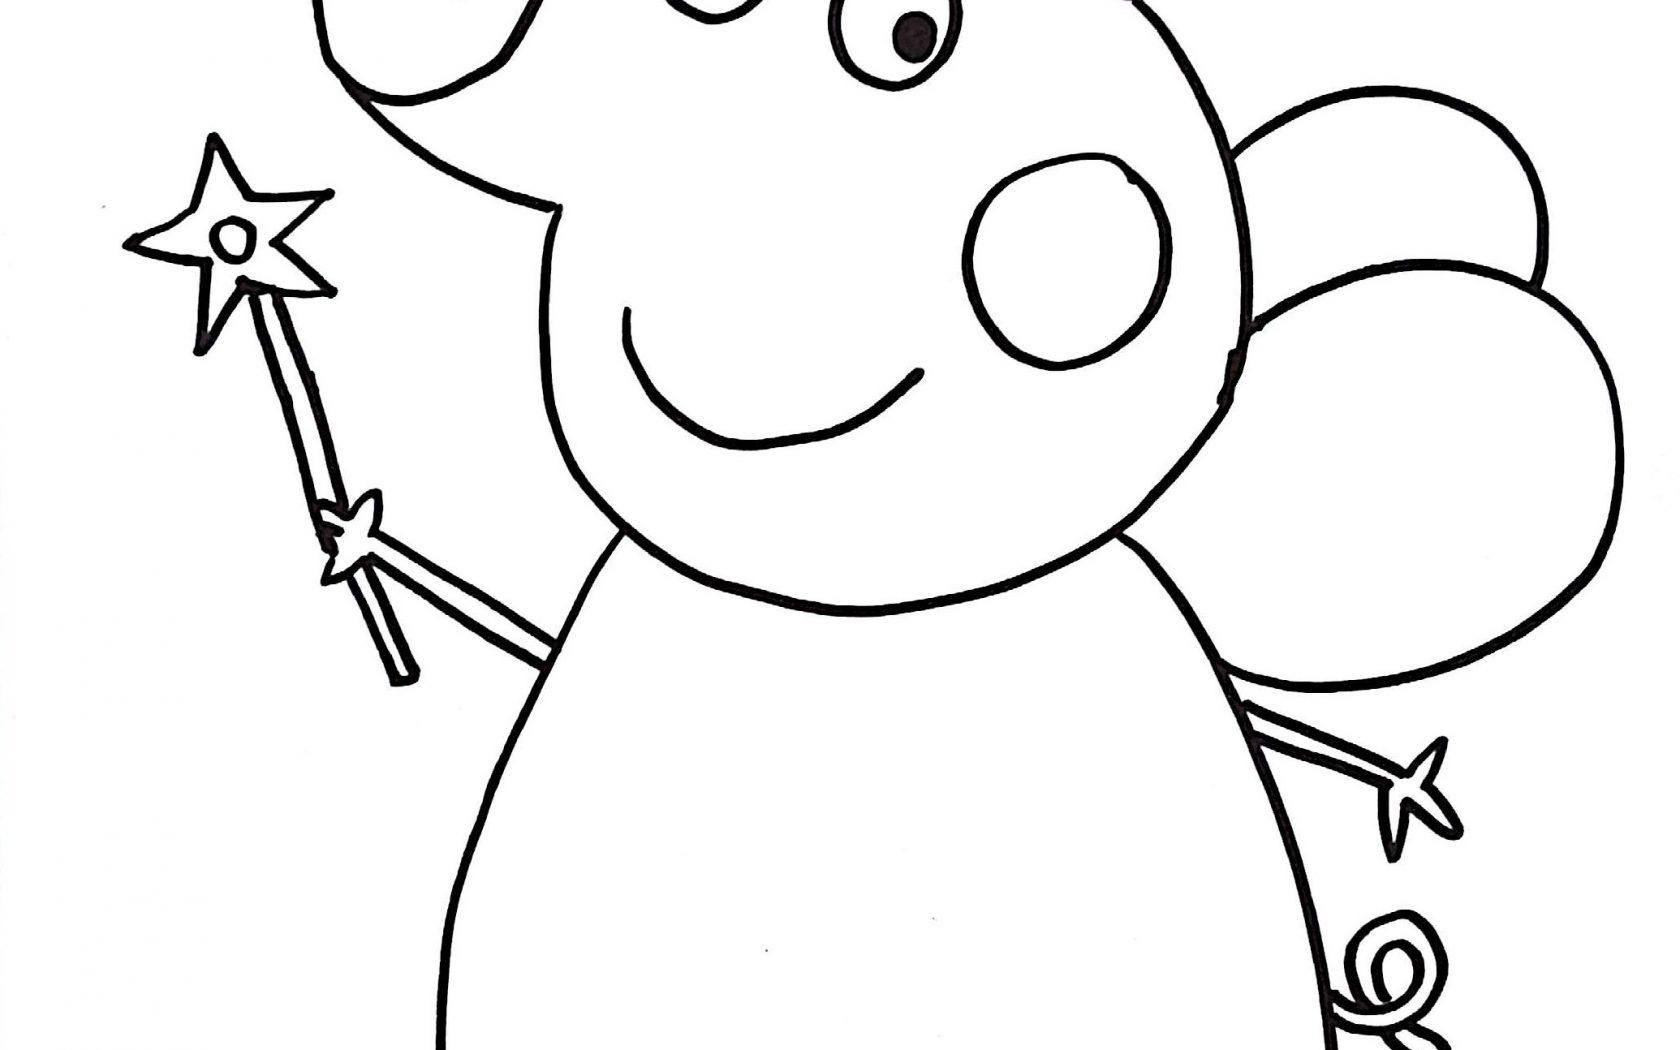 1680x1050 Coloring Pages Of Pig For Kids Unnamed Minecraft Pigs In Mud